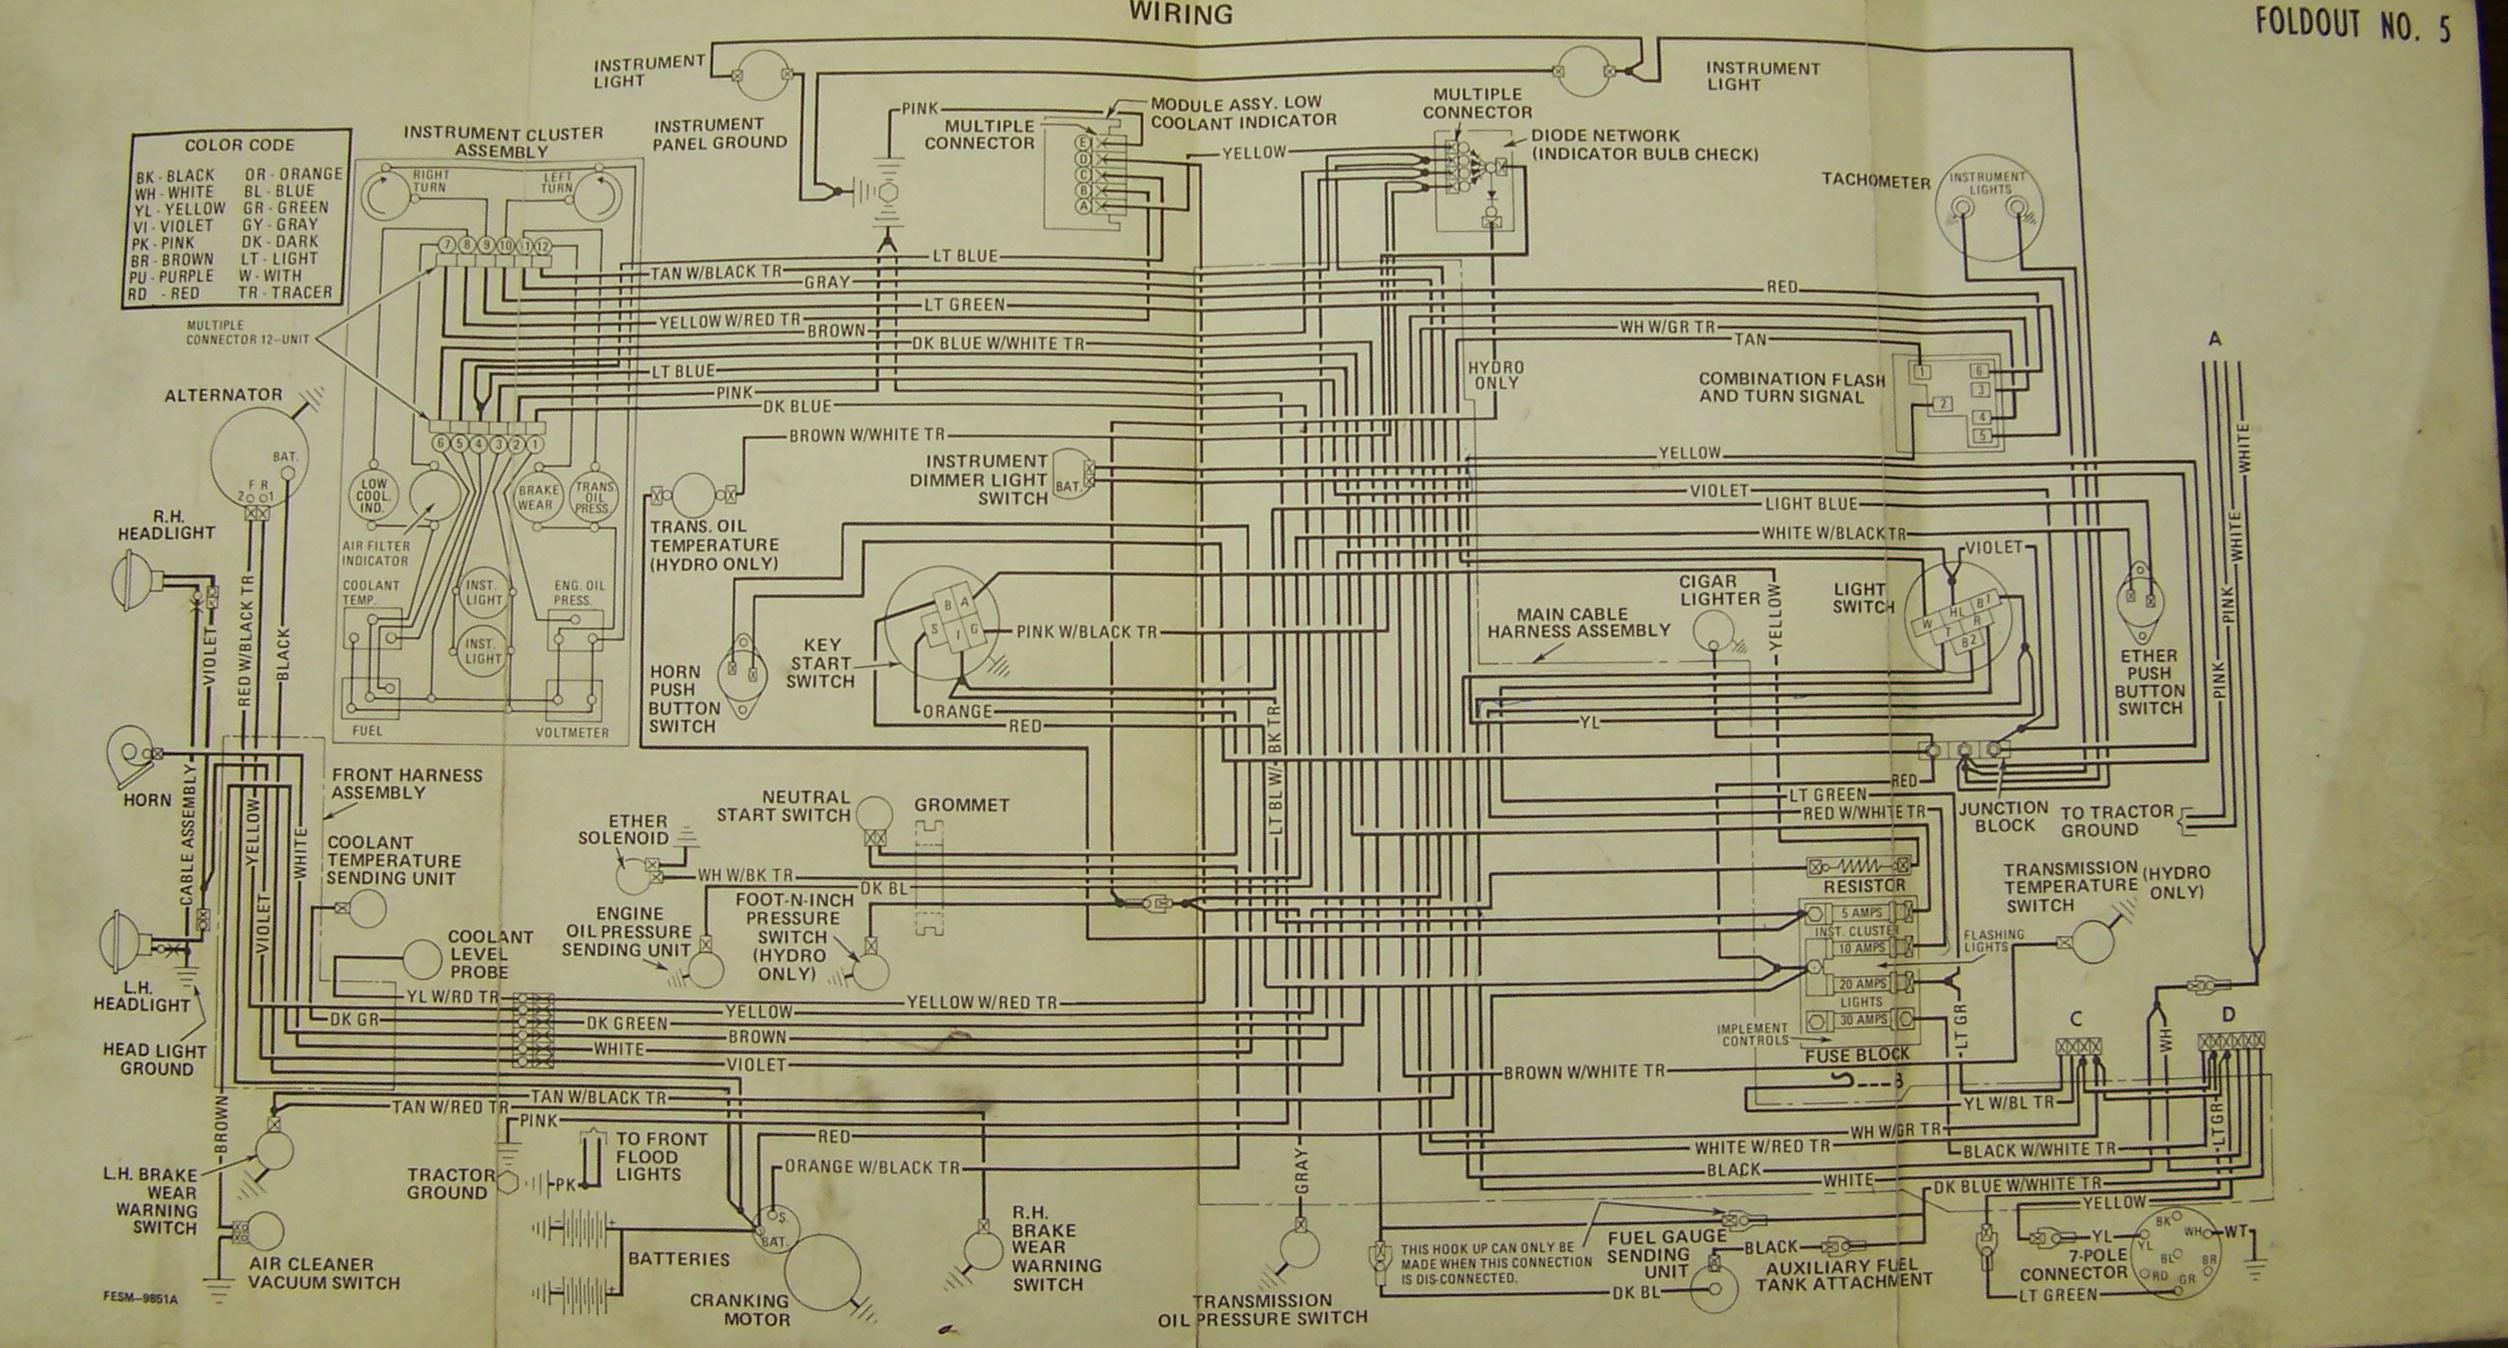 [SCHEMATICS_4FD]  Carter & Gruenewald Co. Inc. - IH-FARMALL Tractor Electrical Wiring Diagrams | Ih 560 Wiring Diagram |  | Carter and Gruenewald